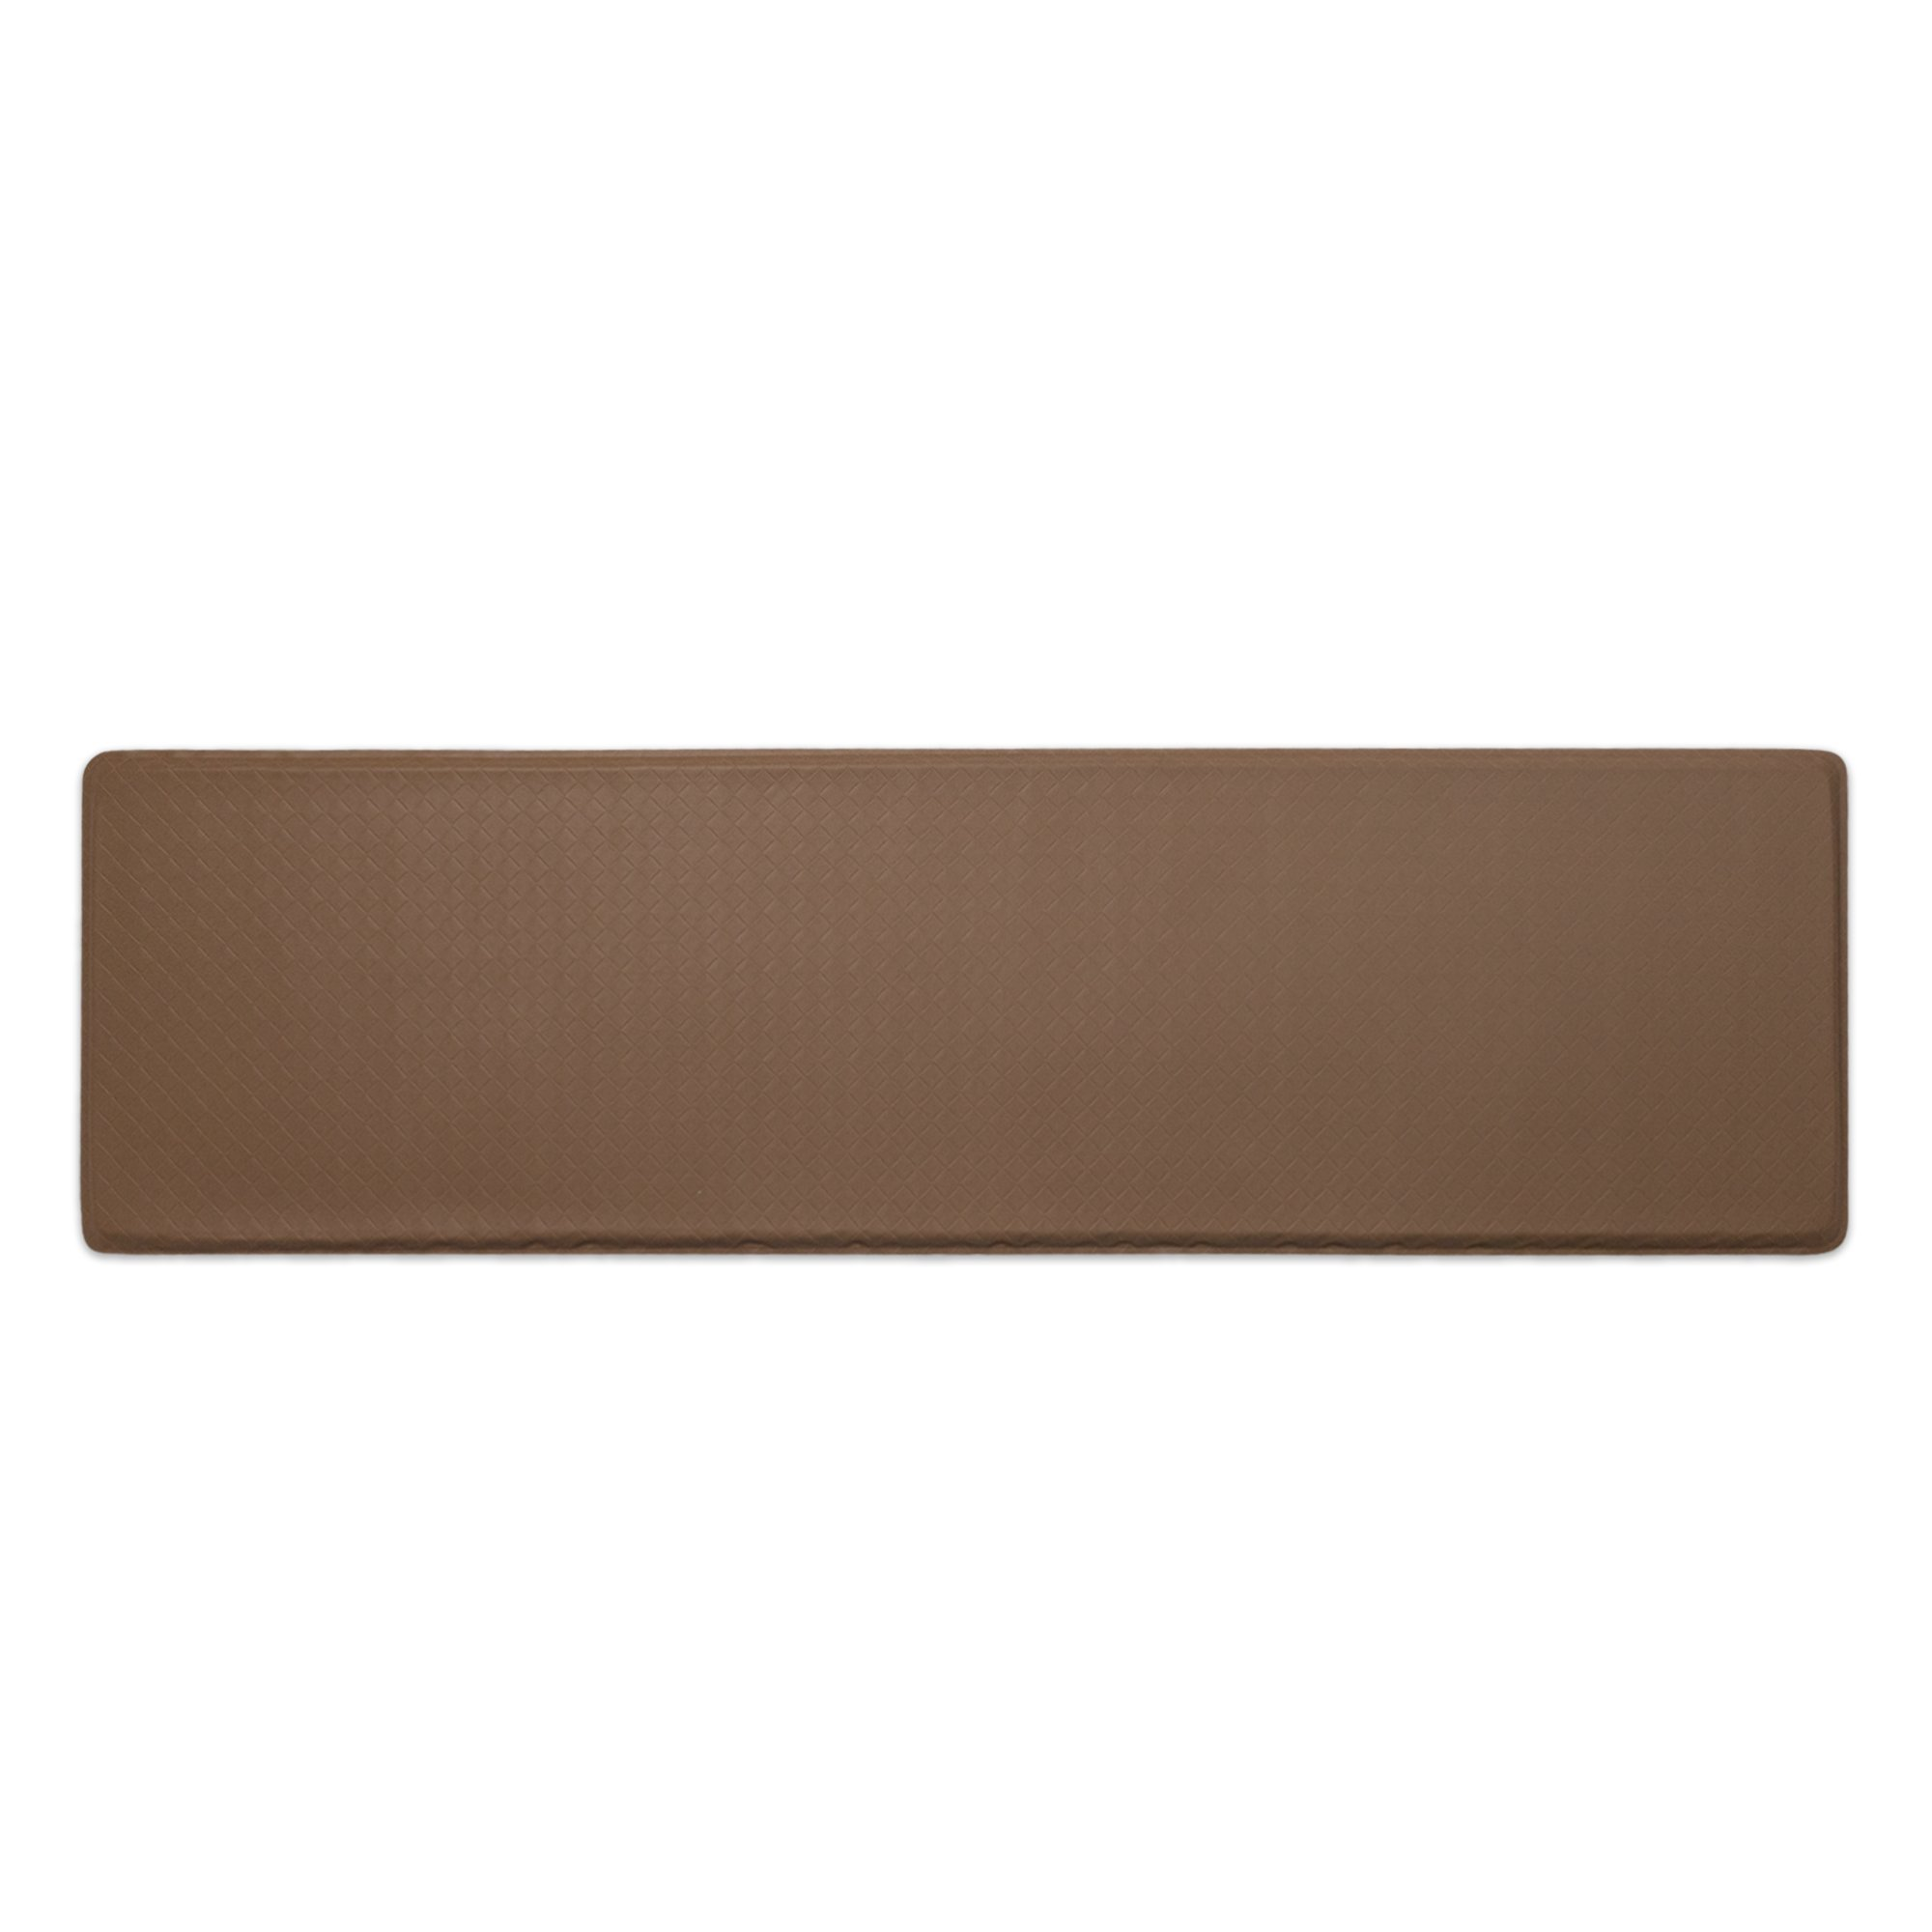 """GelPro Classic Anti-Fatigue Kitchen Comfort Chef Floor Mat, 20x72"""", Basketweave Khaki Stain Resistant Surface with ½"""" gel core for health & wellness"""